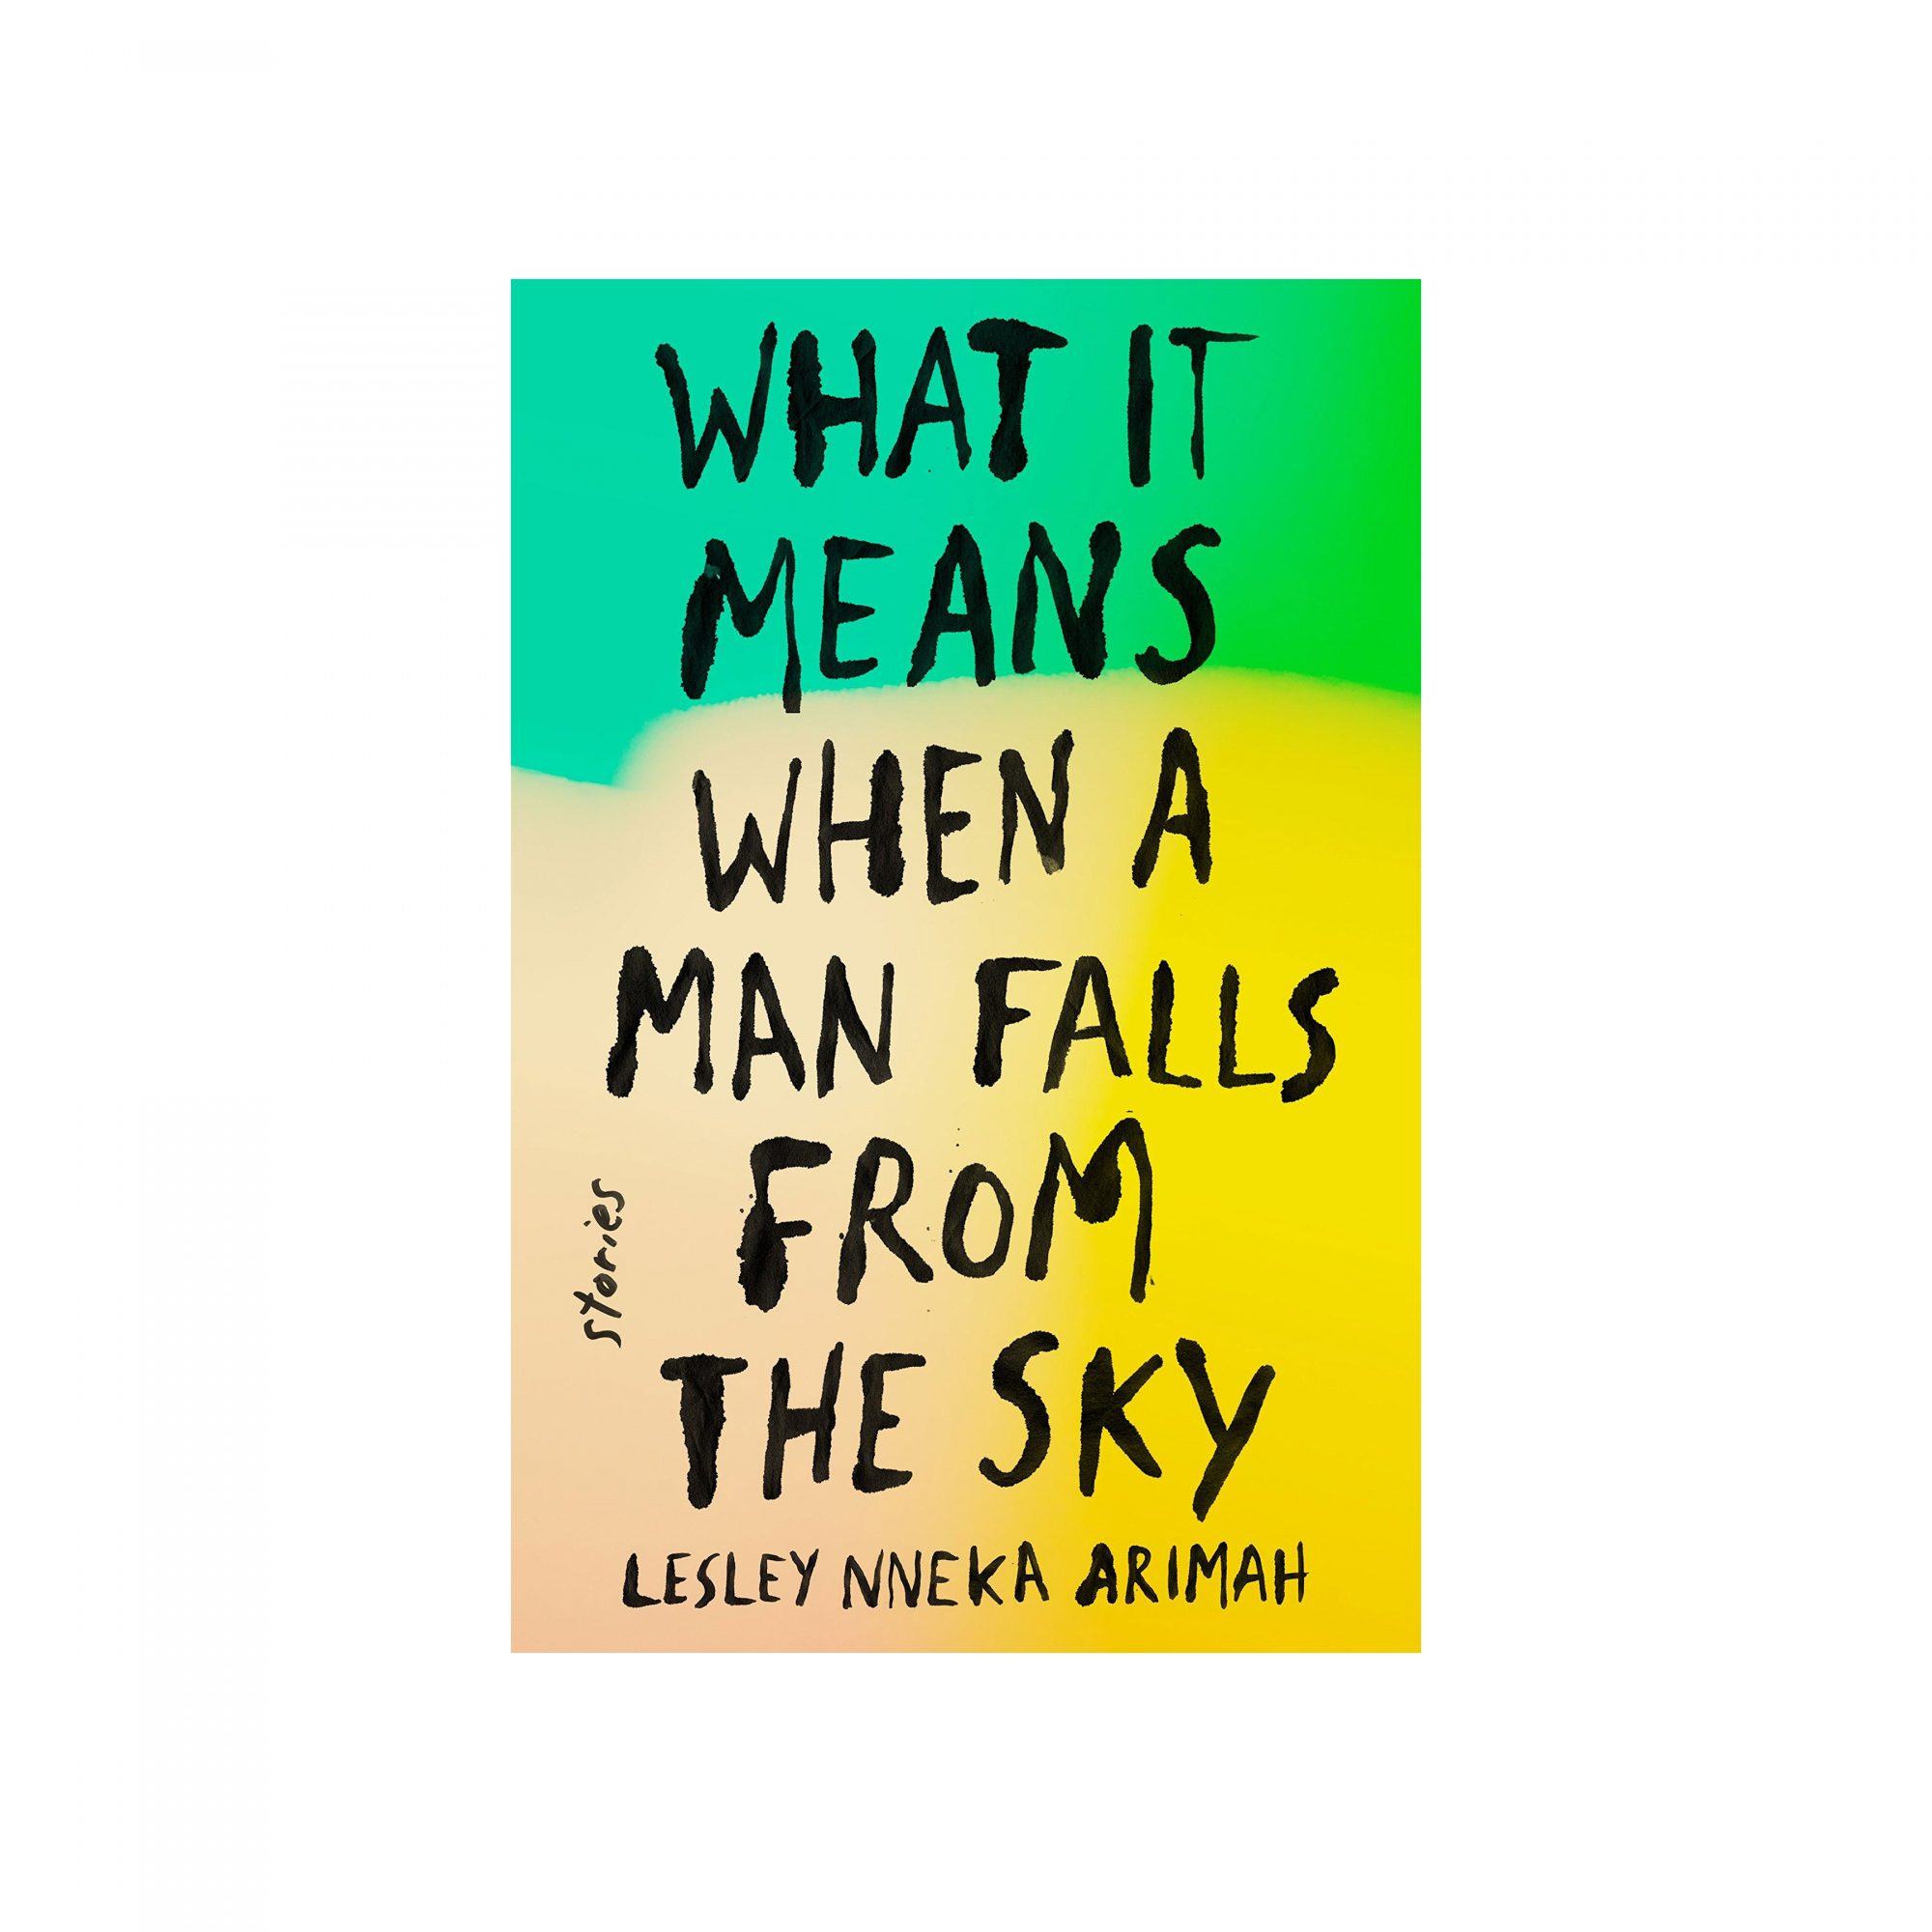 What It Means When a Man Falls from the Sky, by Lesley Nneka Arimah